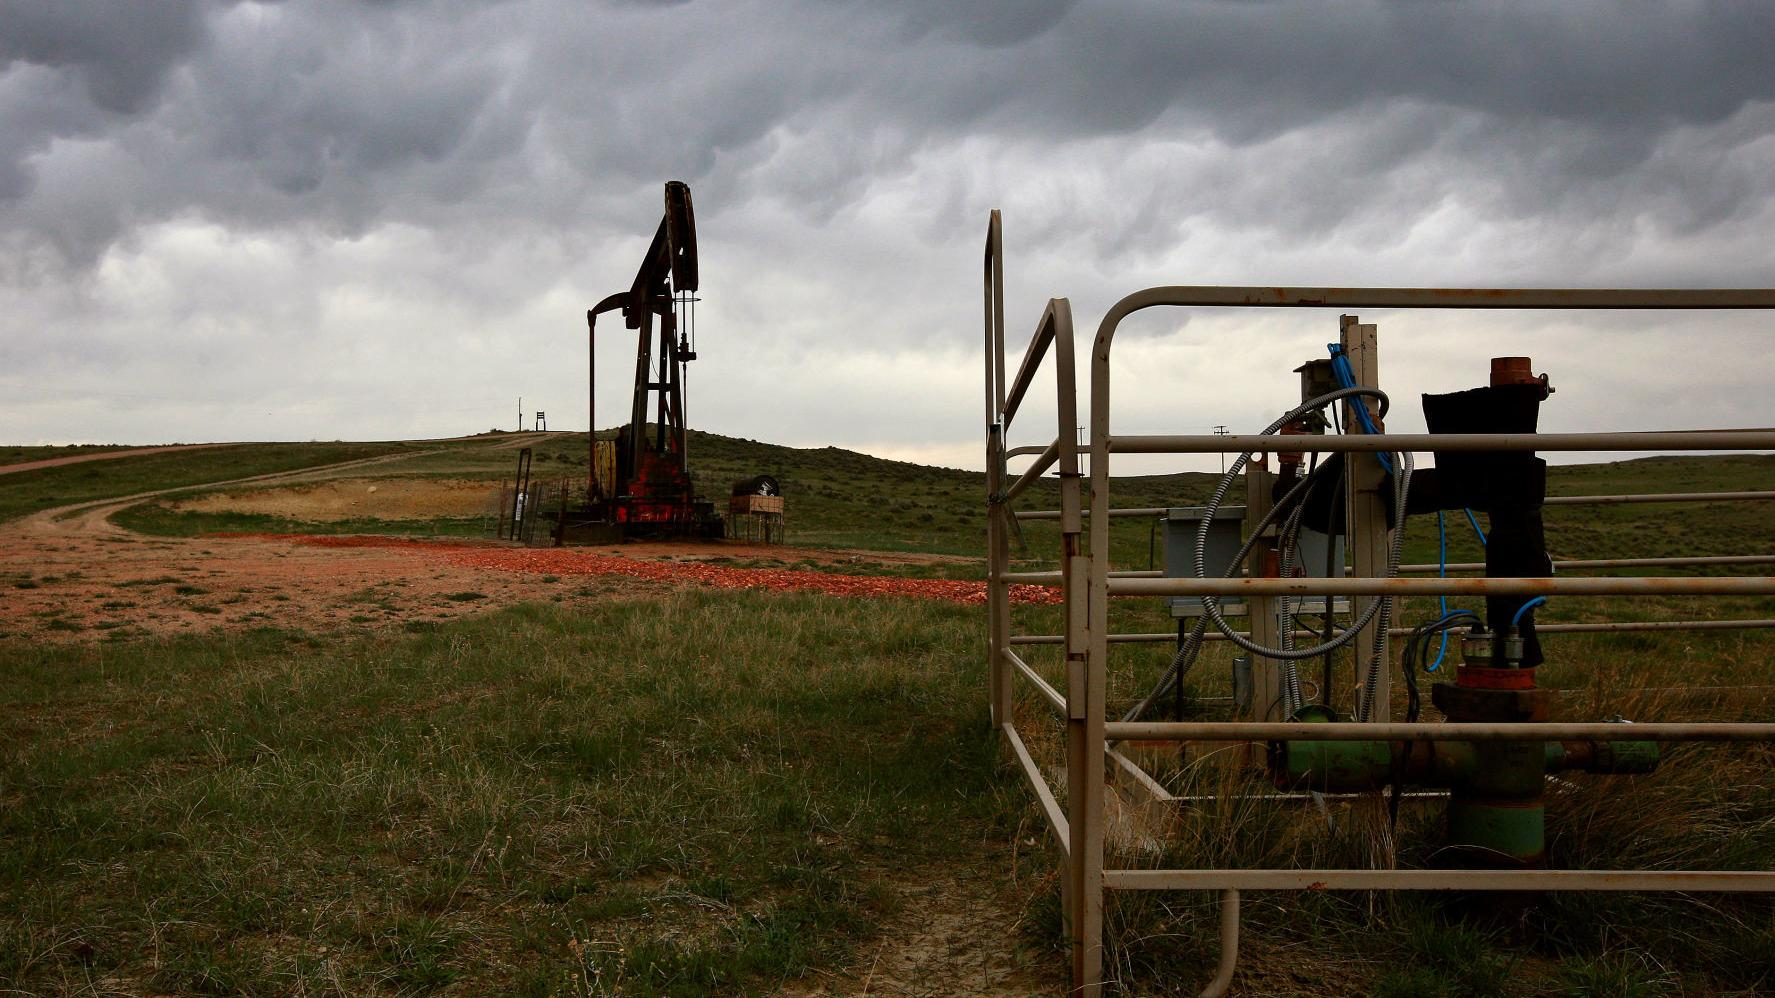 Report: Cleanup of abandoned oil, gas wells could cost U.S. hundreds of millions